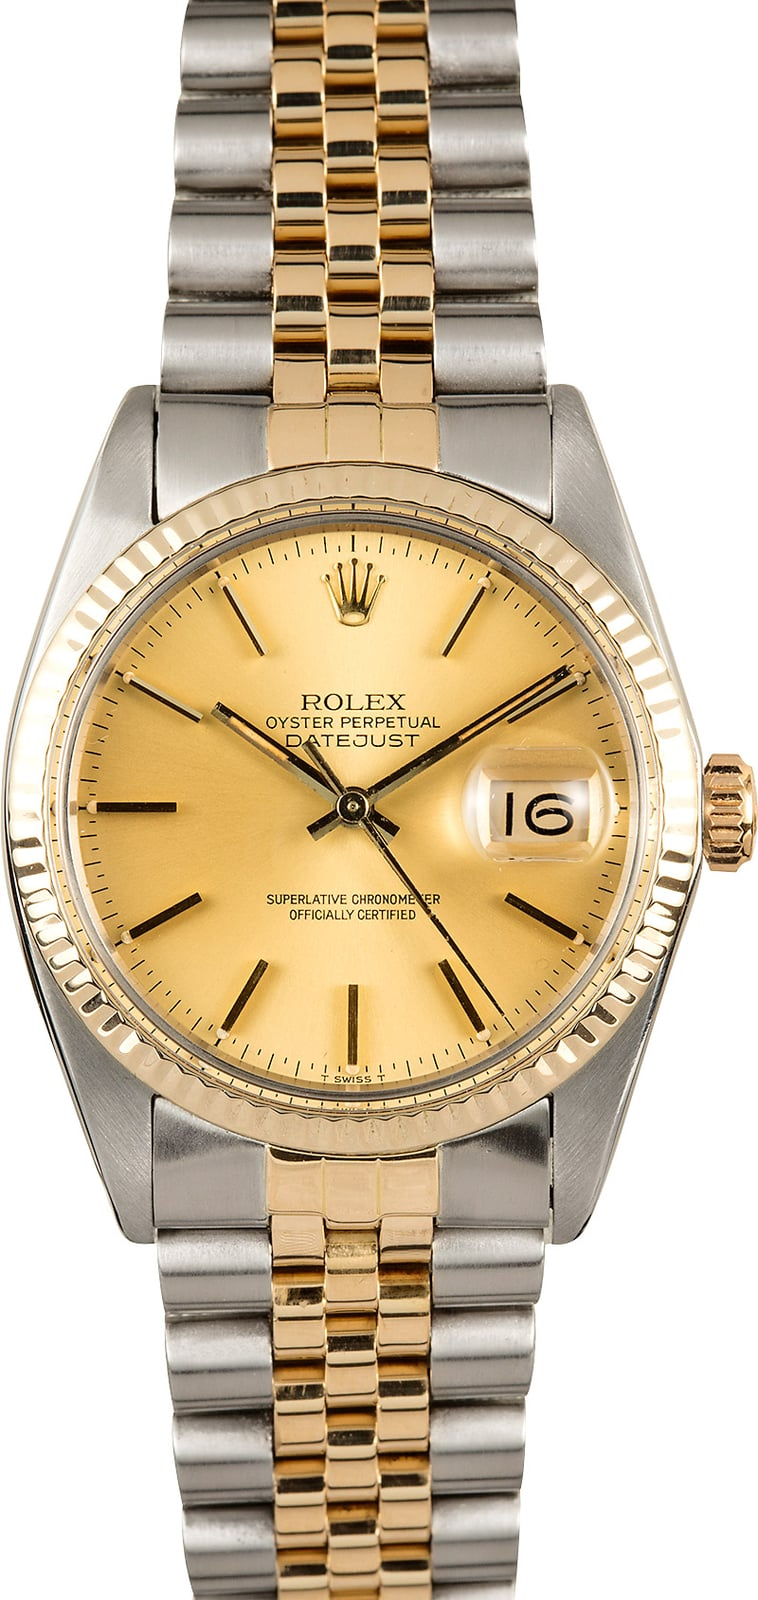 Certified Pre Owned >> Rolex Datejust 16013 Certified Pre-Owned Watch